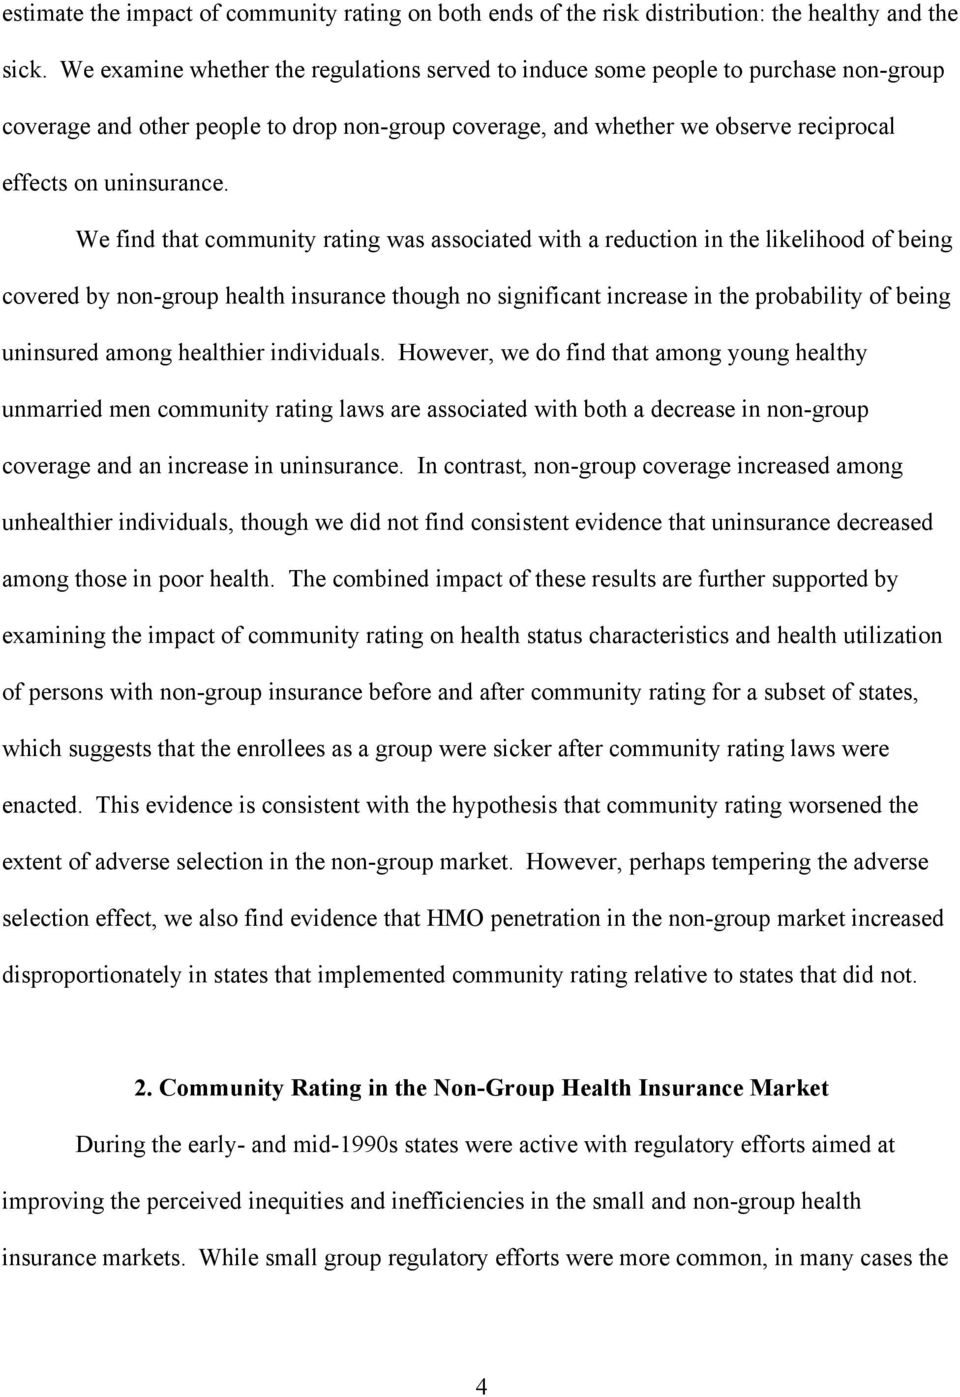 We find that community rating was associated with a reduction in the likelihood of being covered by non-group health insurance though no significant increase in the probability of being uninsured